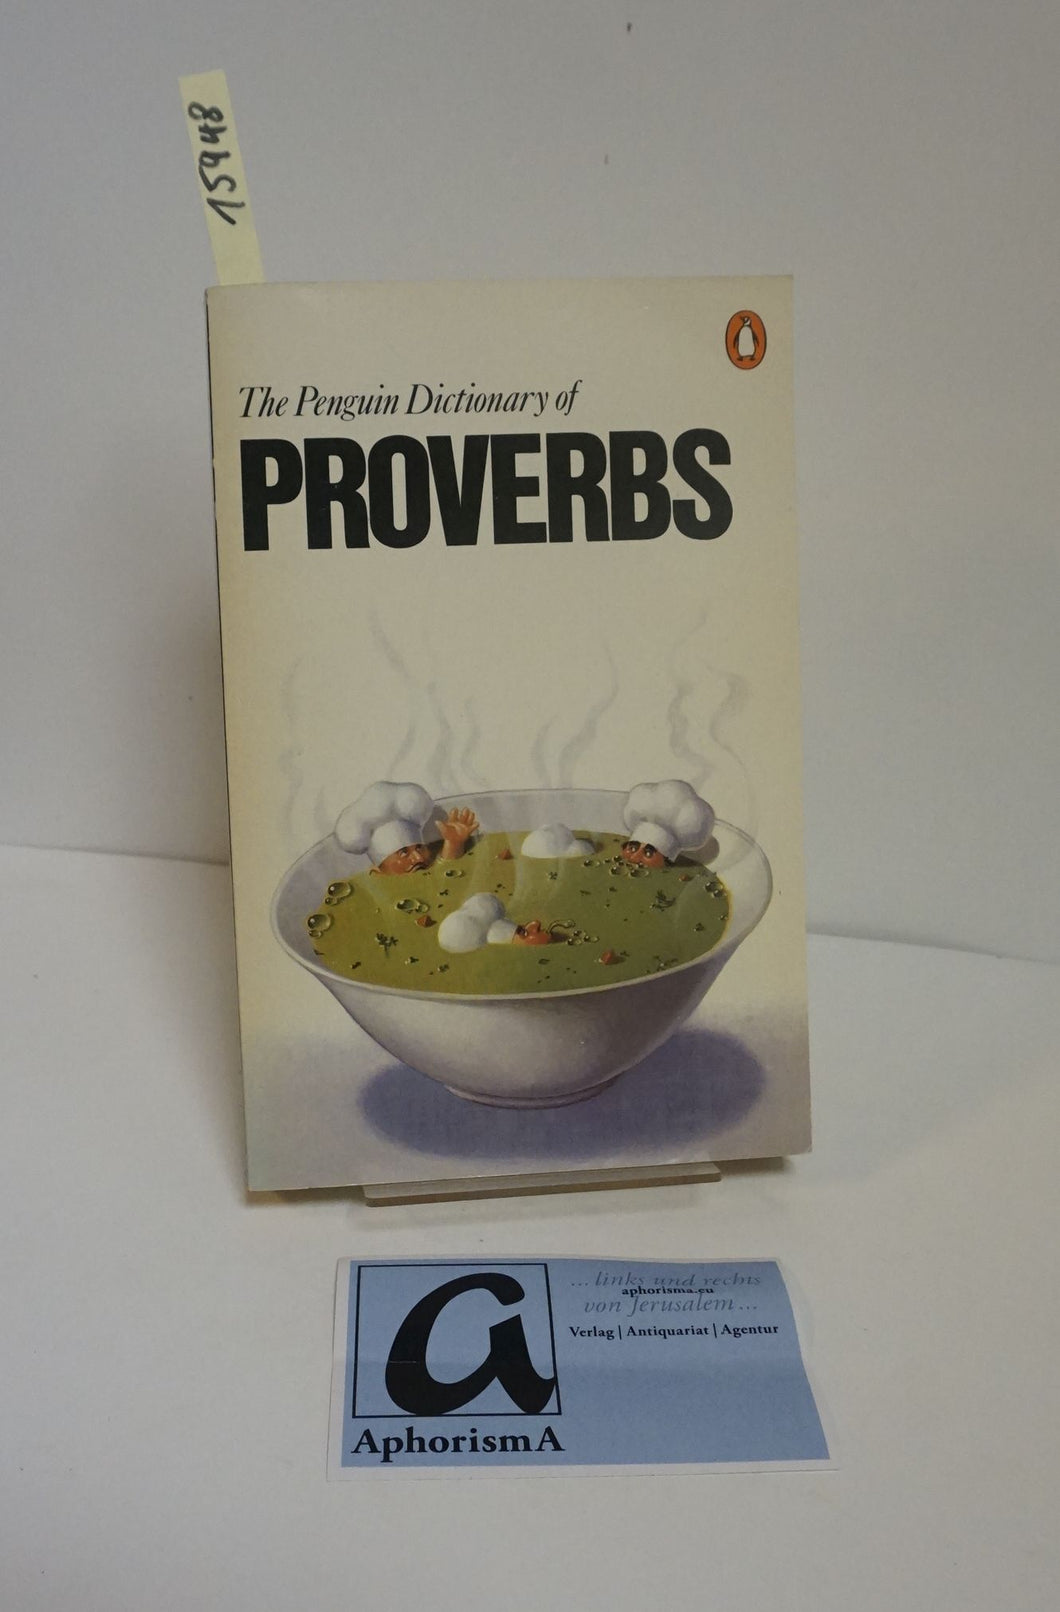 The Peguin Dictionary of Proverbs